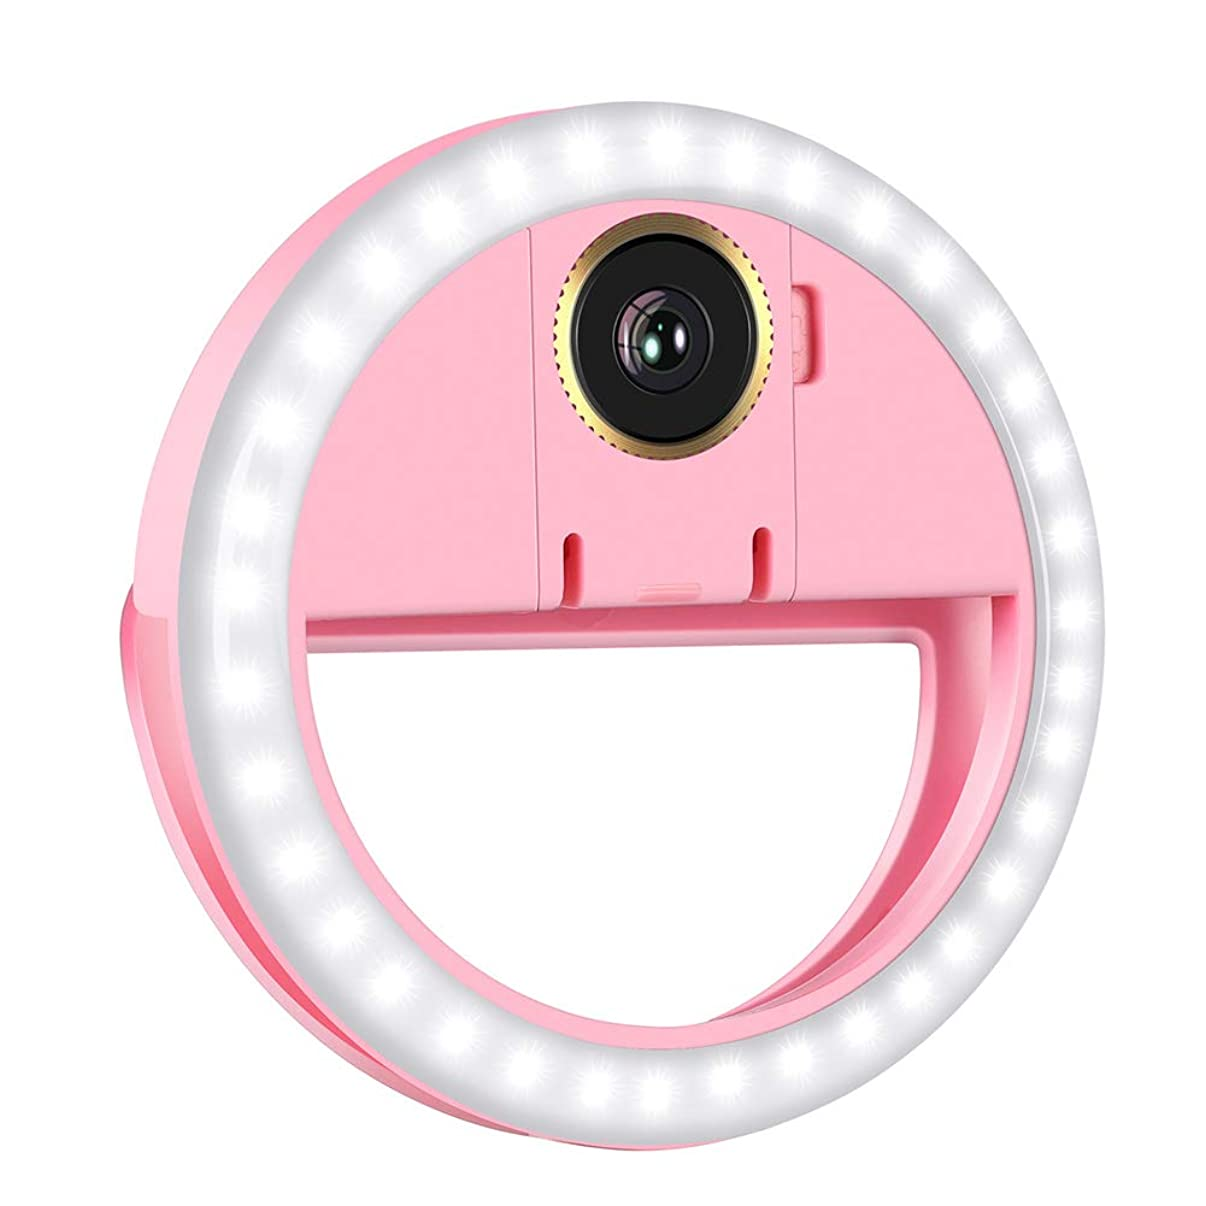 Selfie Light Ring, OU-BAND LED Rechargeable Clip On Phone Ring Lights with Macro Camera Lens for Smart Phone Laptop Camera Photography Video Lighting - Pink